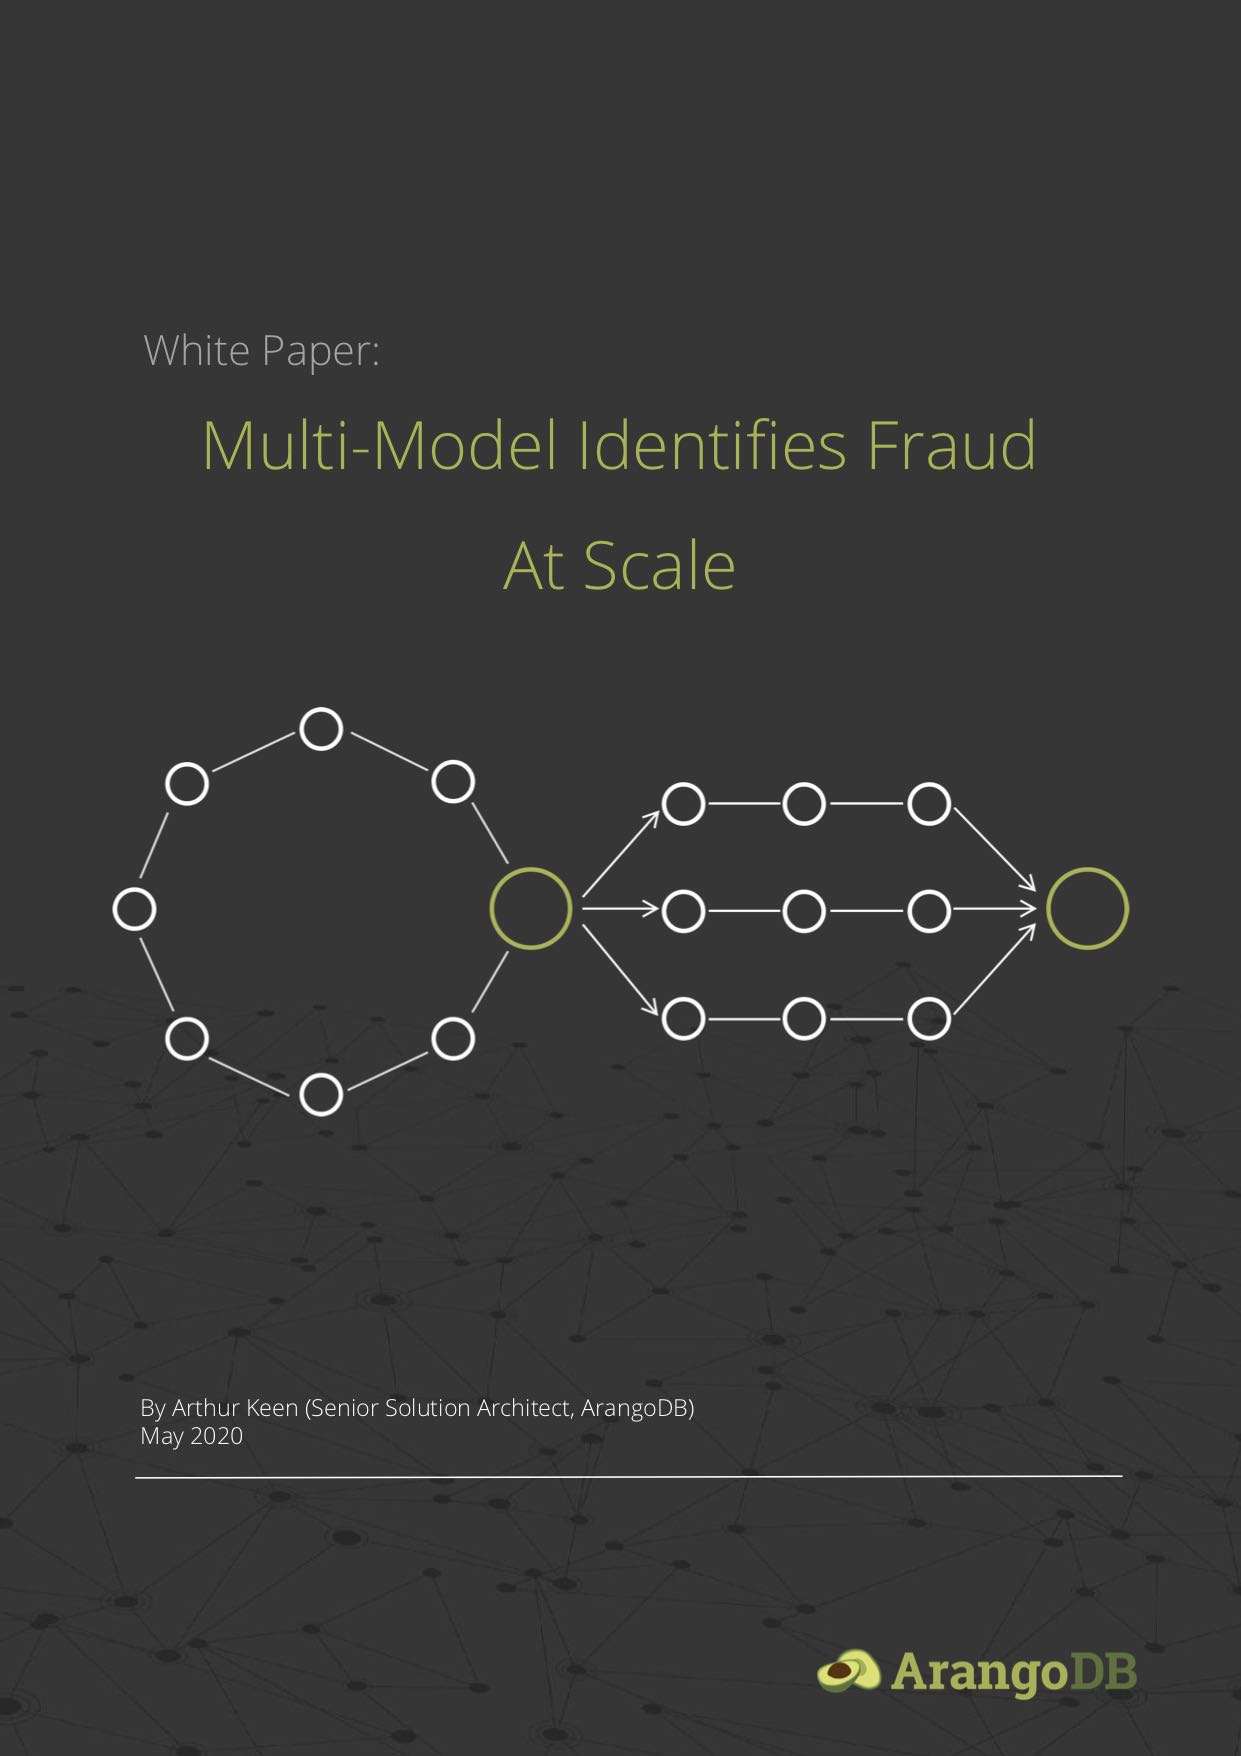 White Paper Fraud Detection Cover